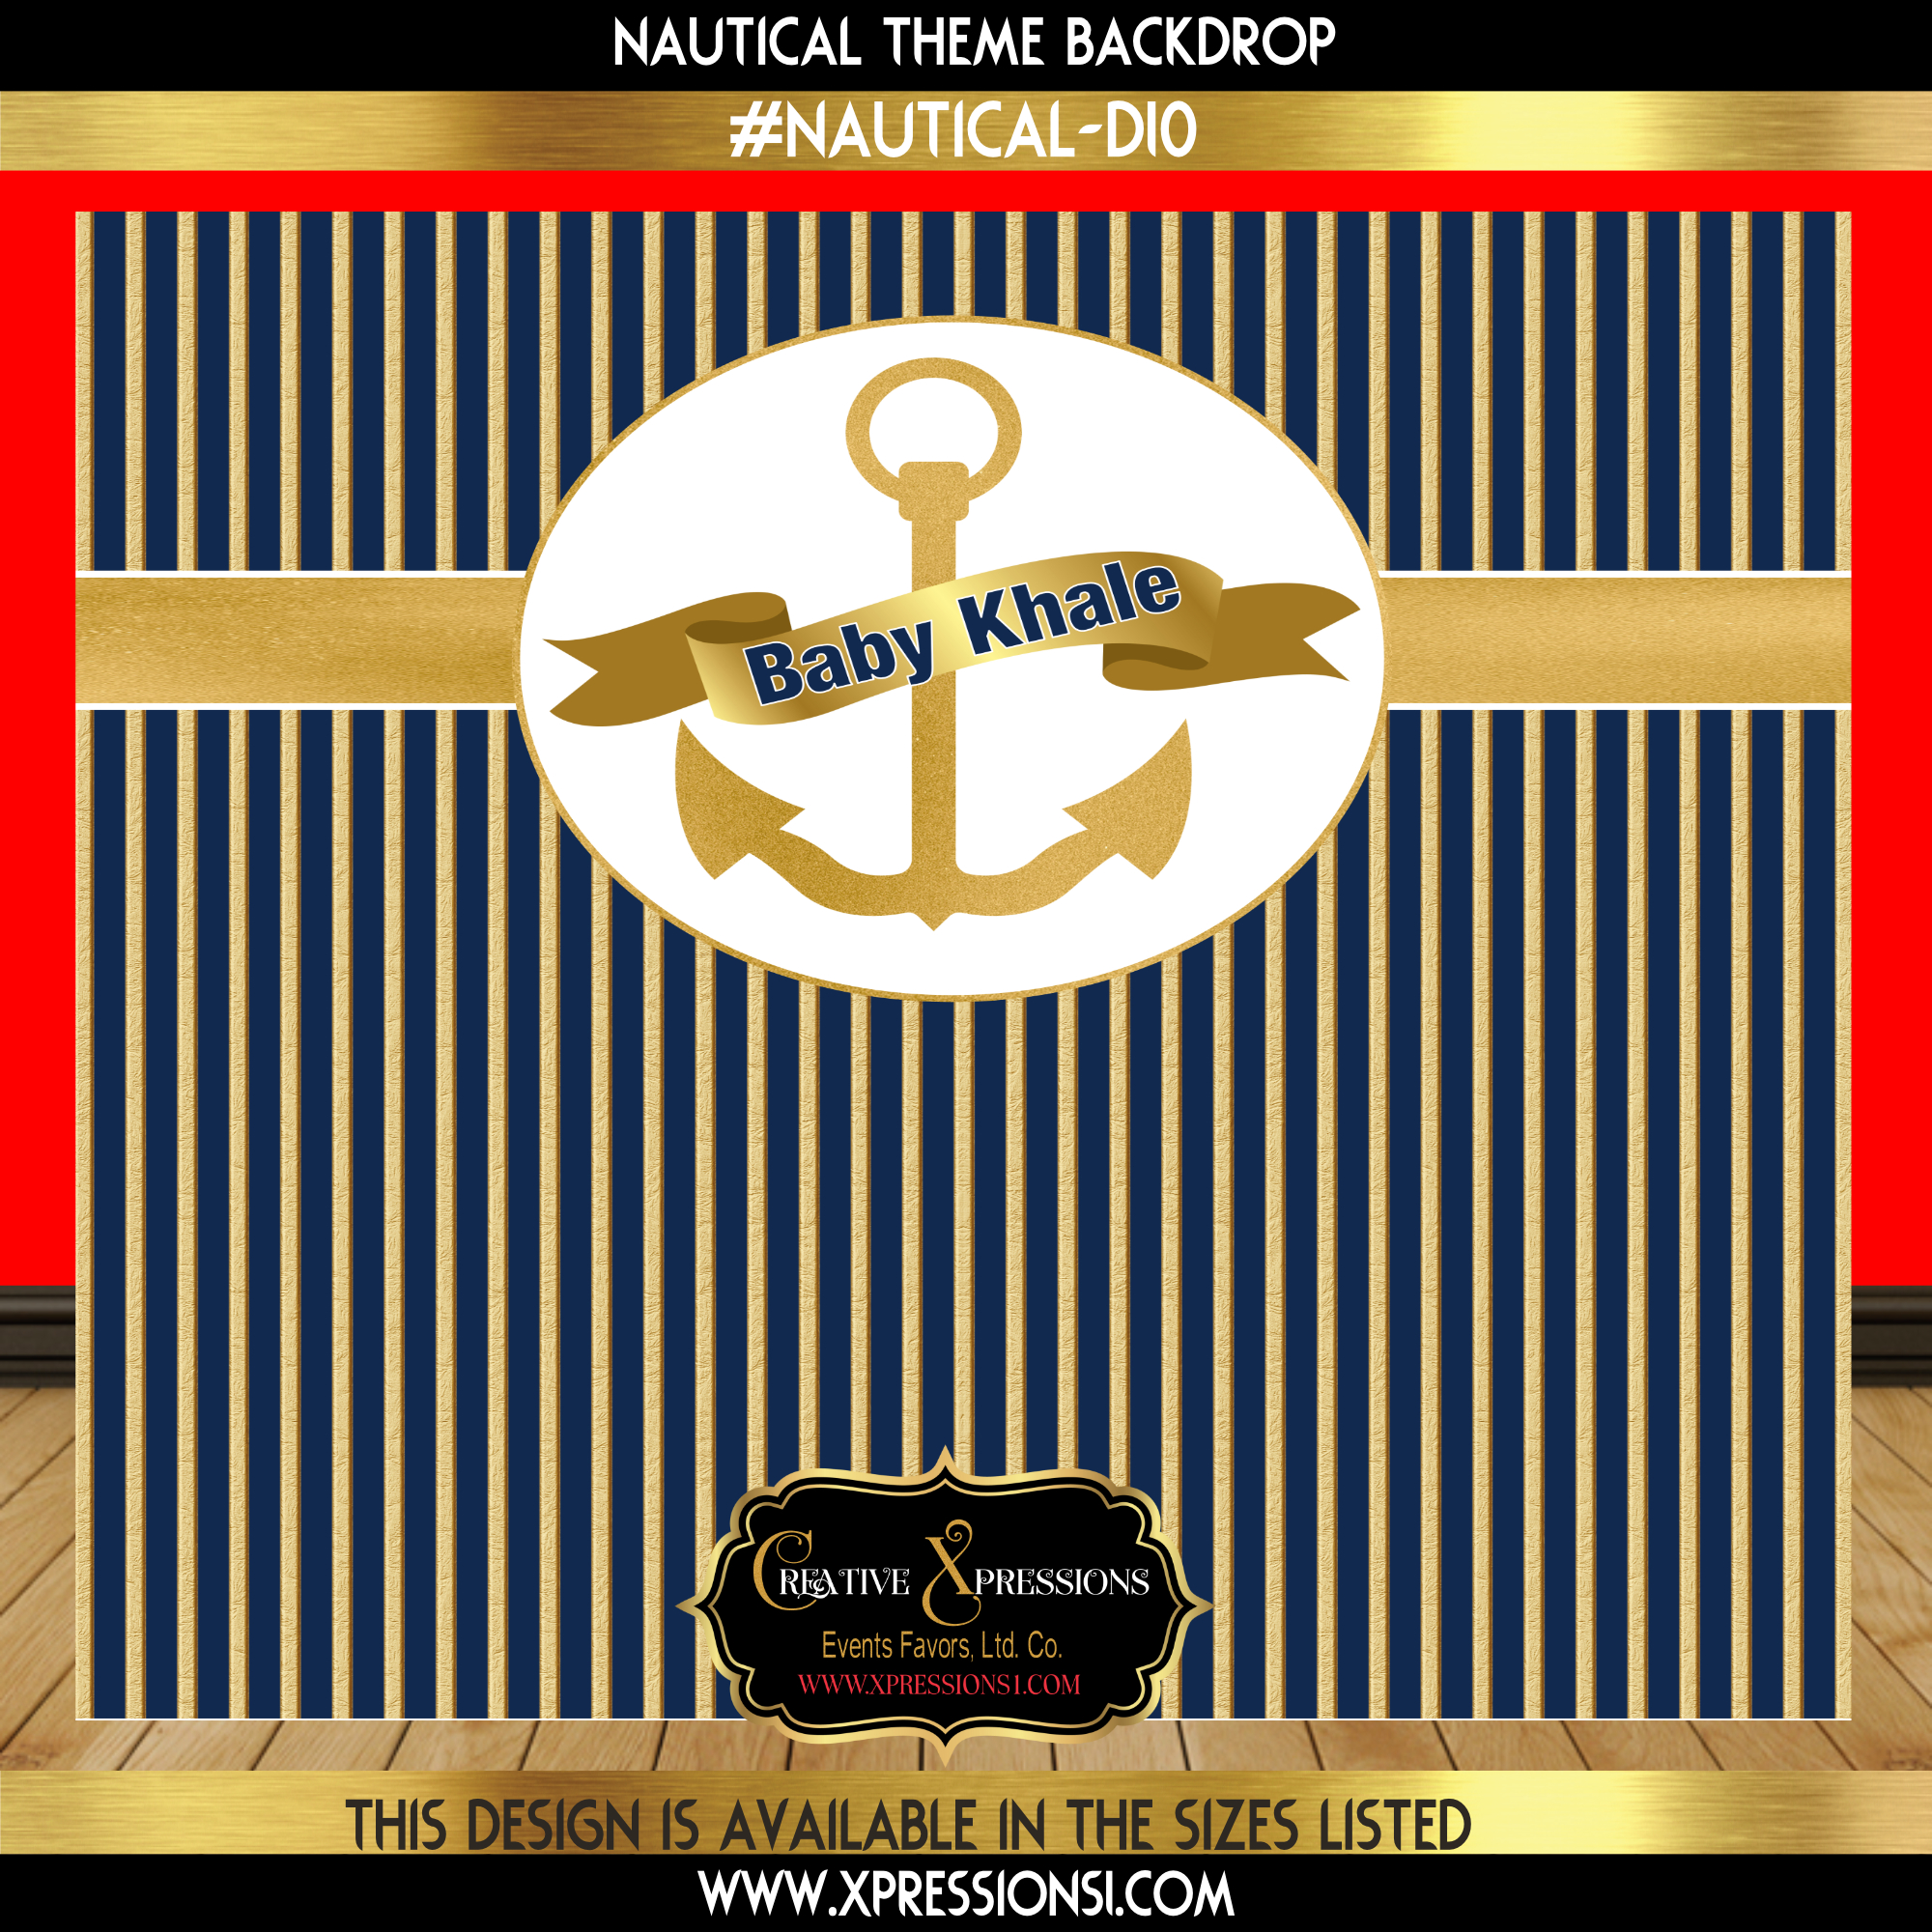 Blue with Gold Stripes Baby Shower Backdrop